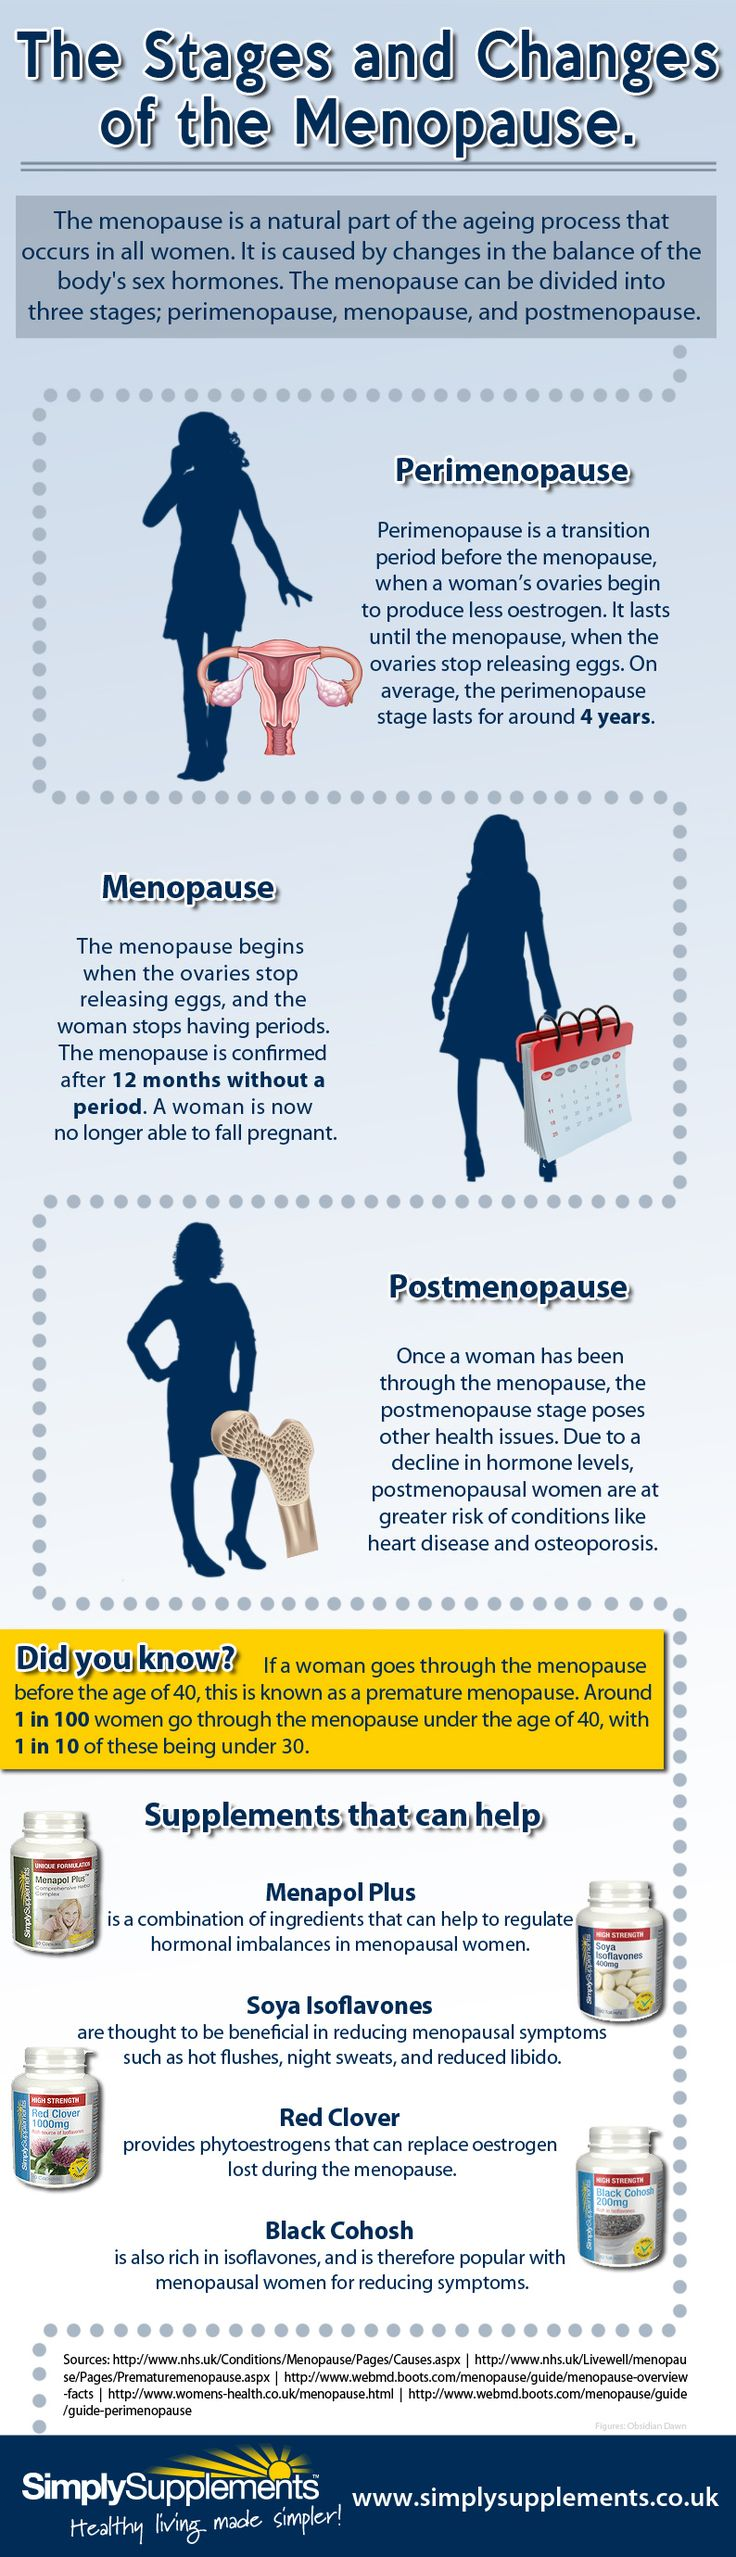 Did you know that there are actually three seperate stages of the menopause?  View our infographic below to see which changes affect women at each stage.